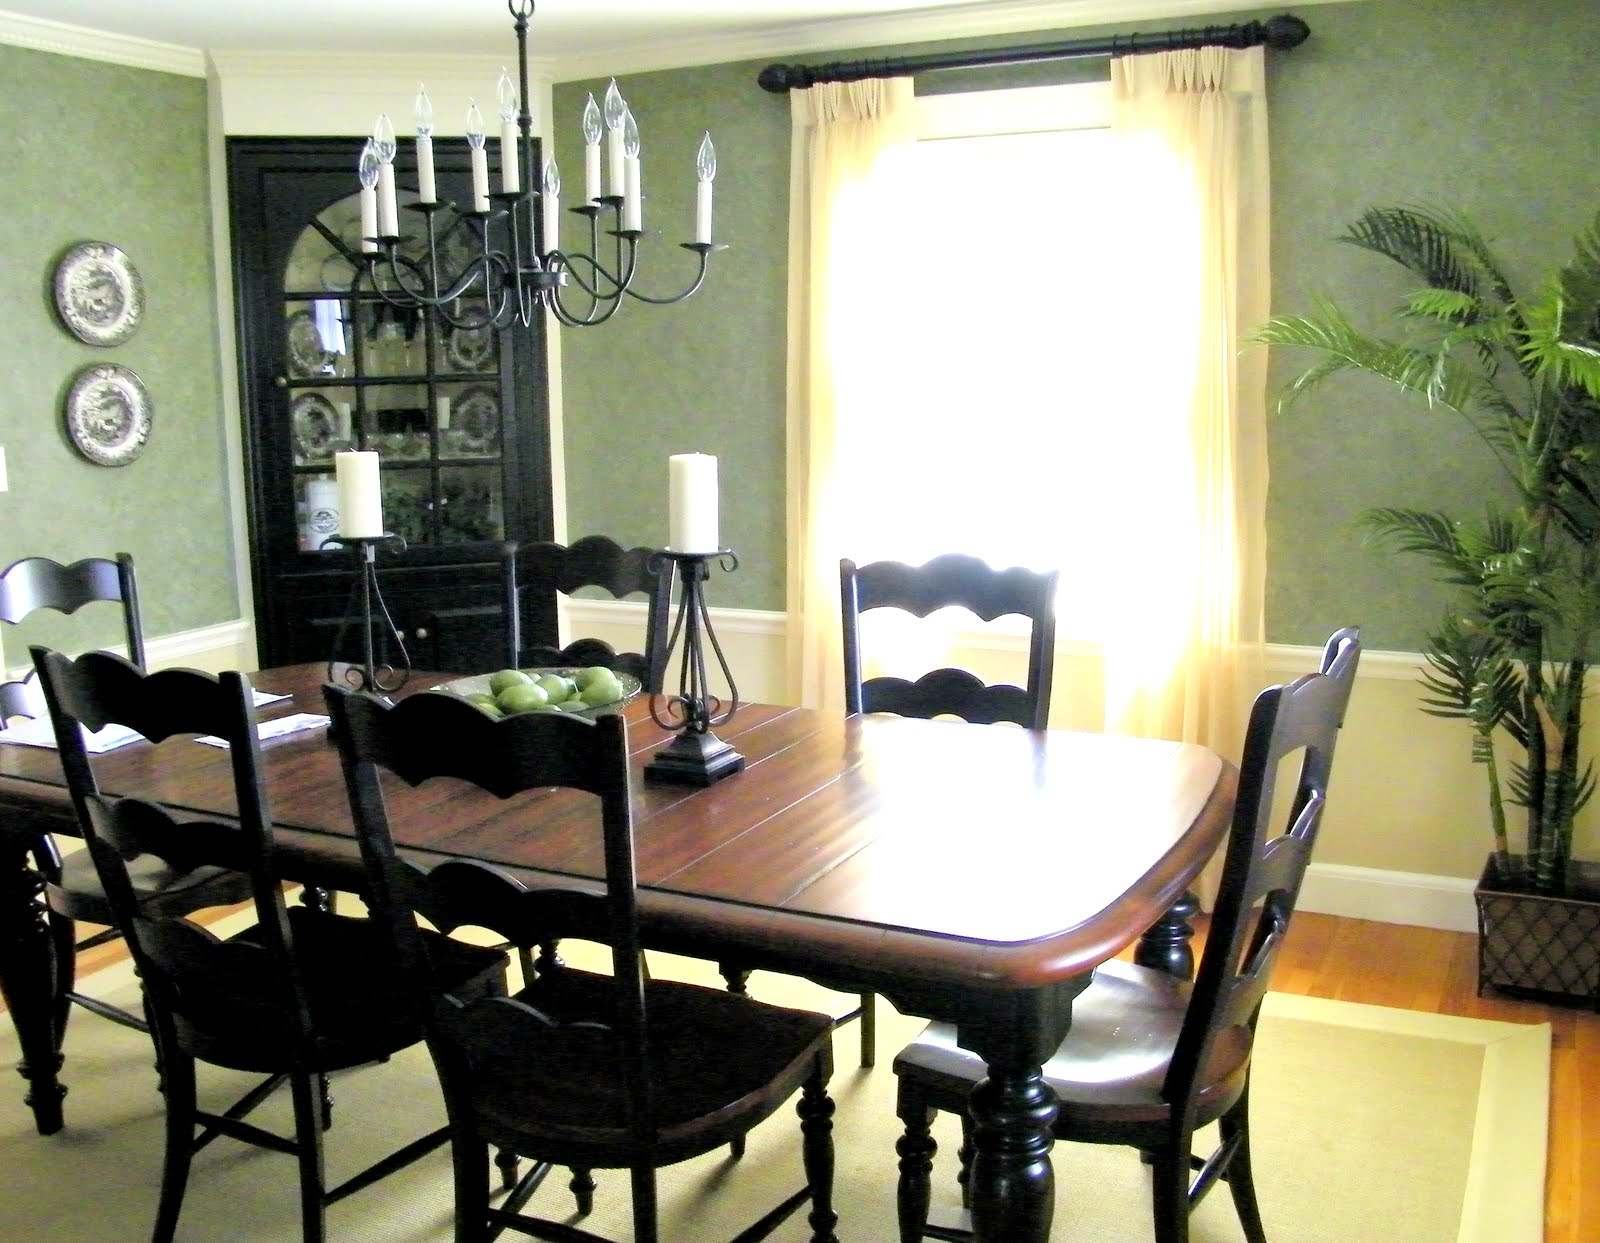 Maison Decor: Black Paint Updates A Traditional Dining Room